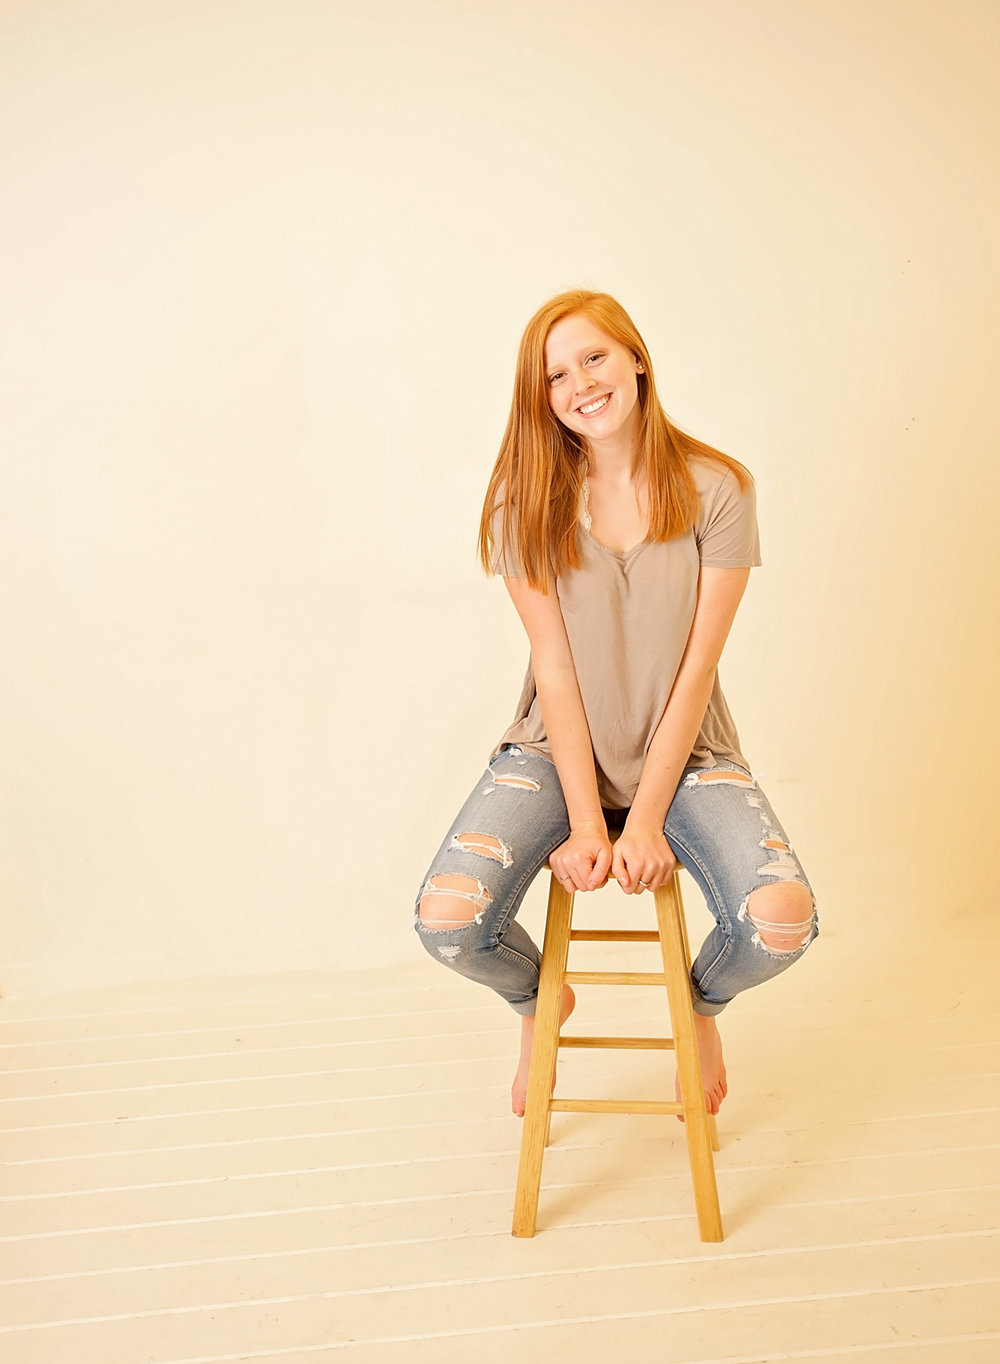 studio-senior-portrait-session-columbus-ohio.jpg